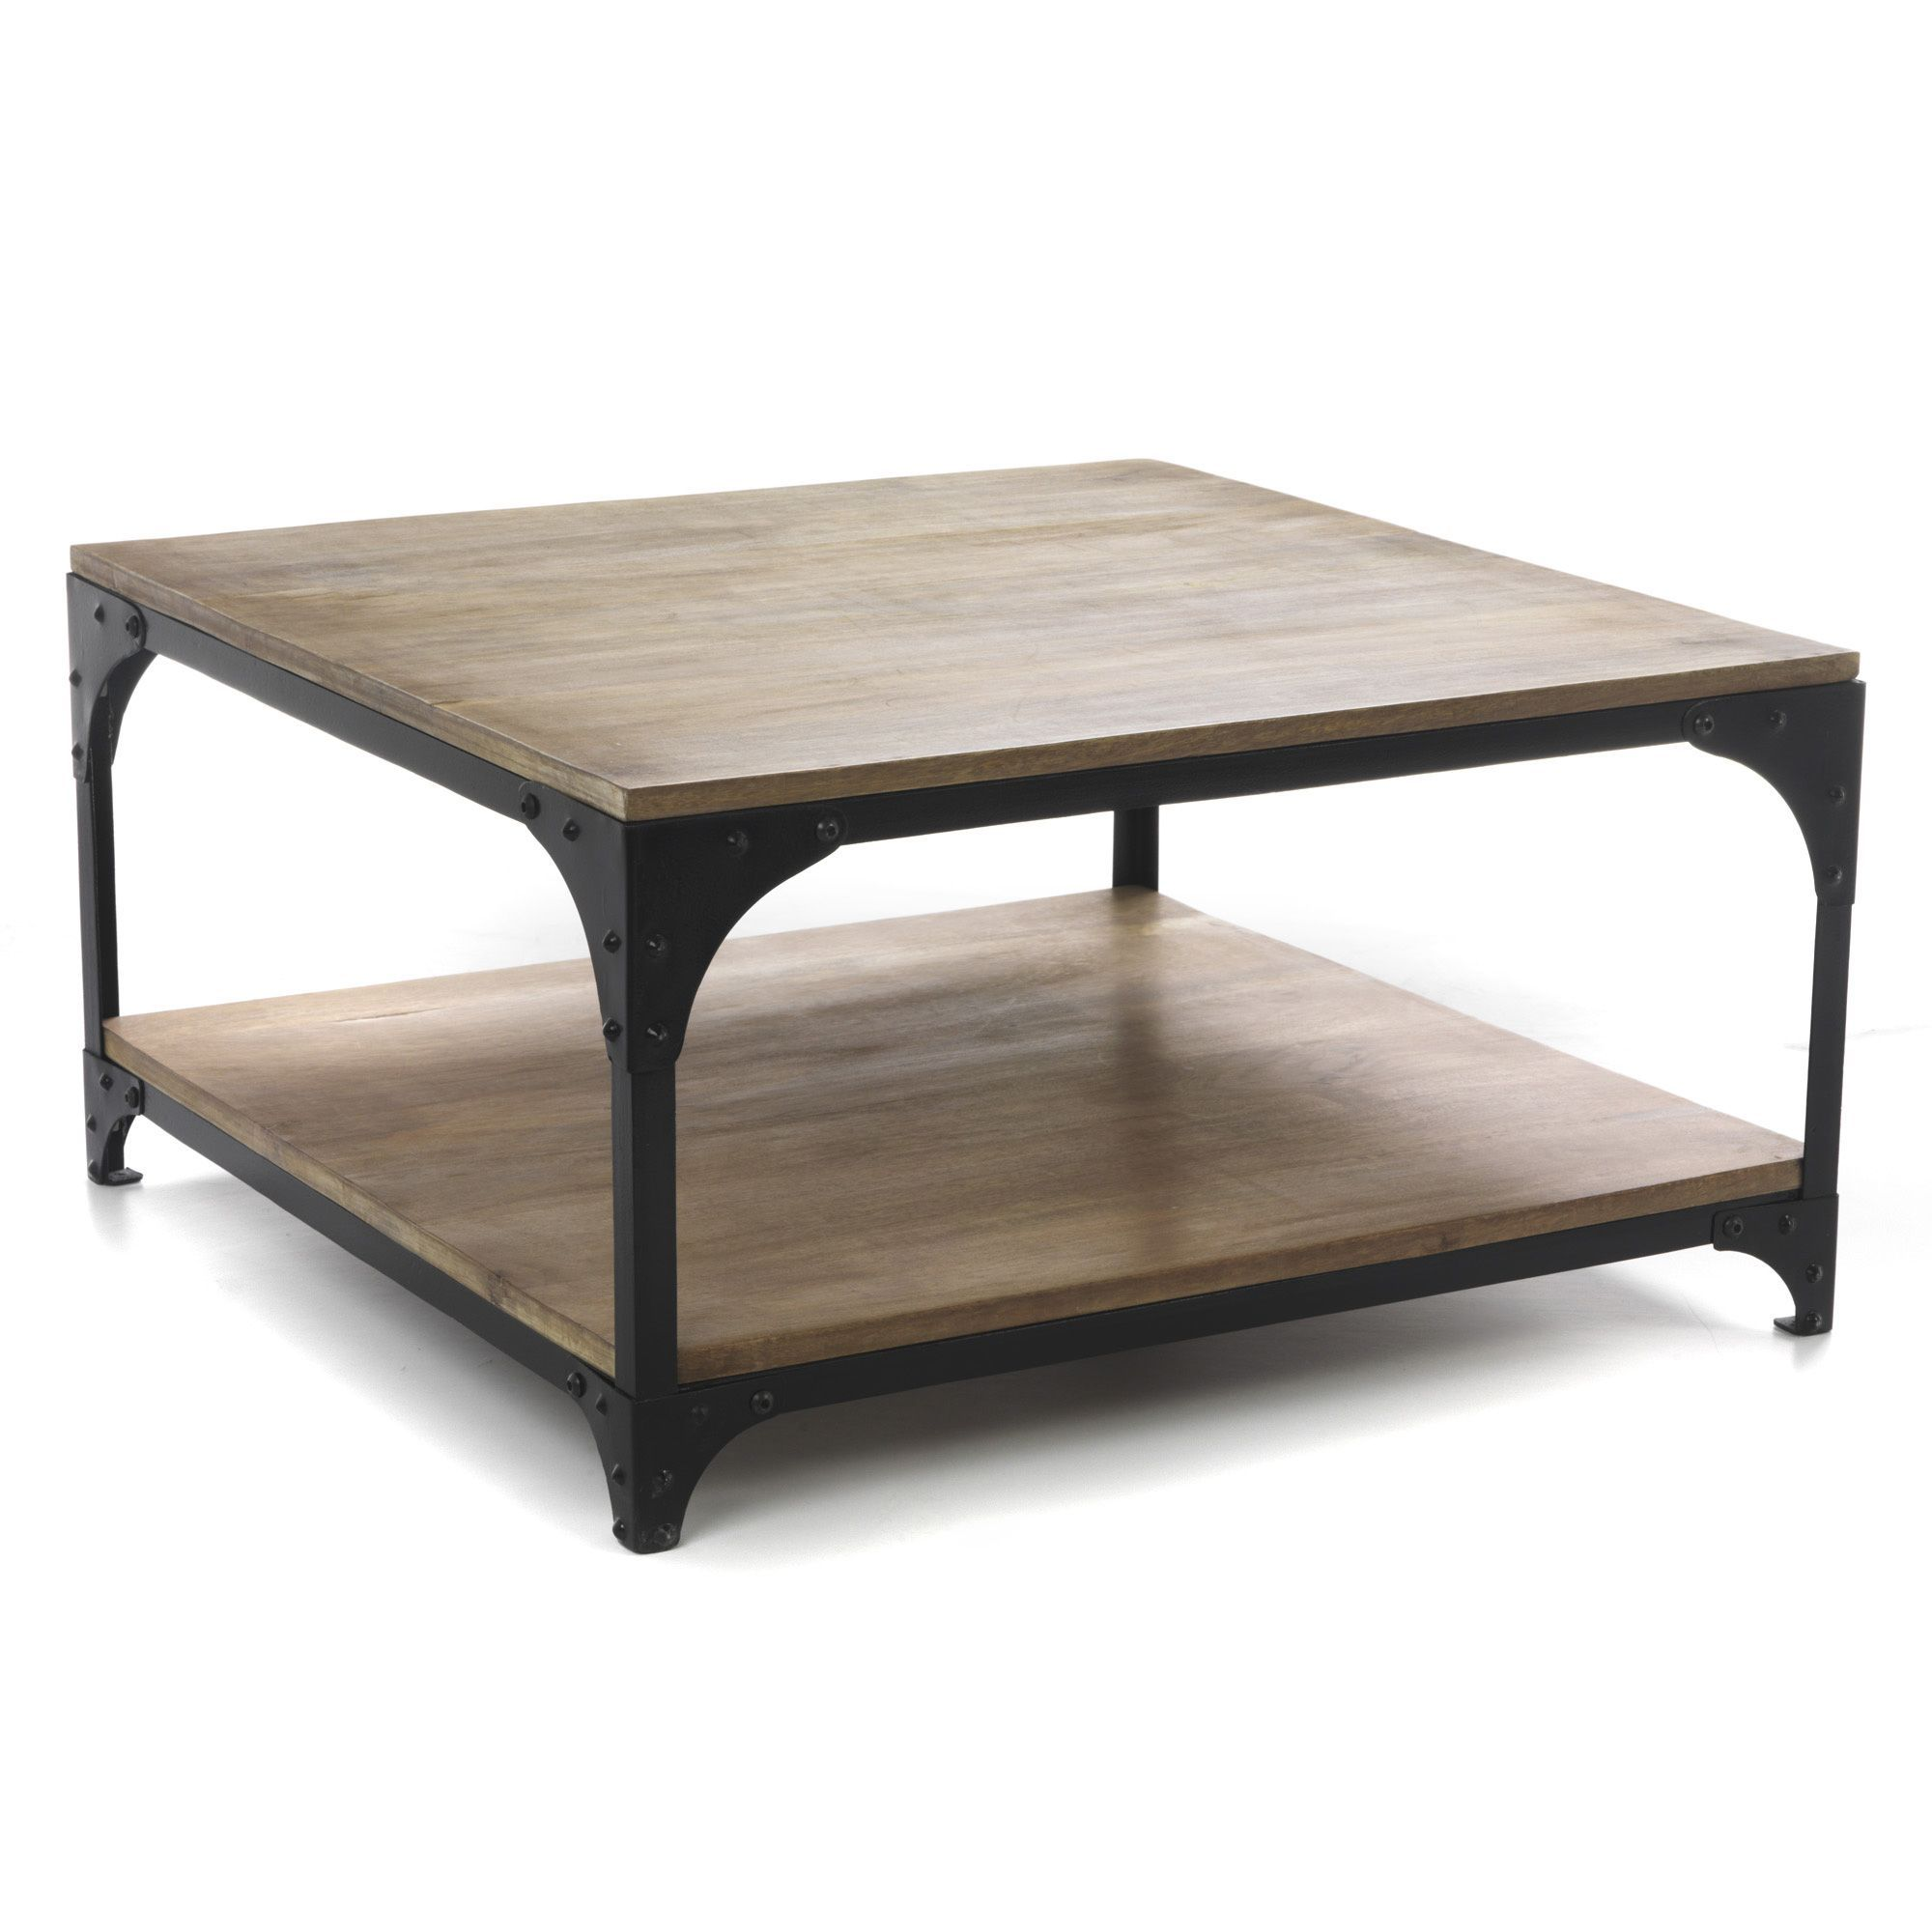 Table basse carr e industrielle naturel new ately les tables basses tab - Decoration table basse ...